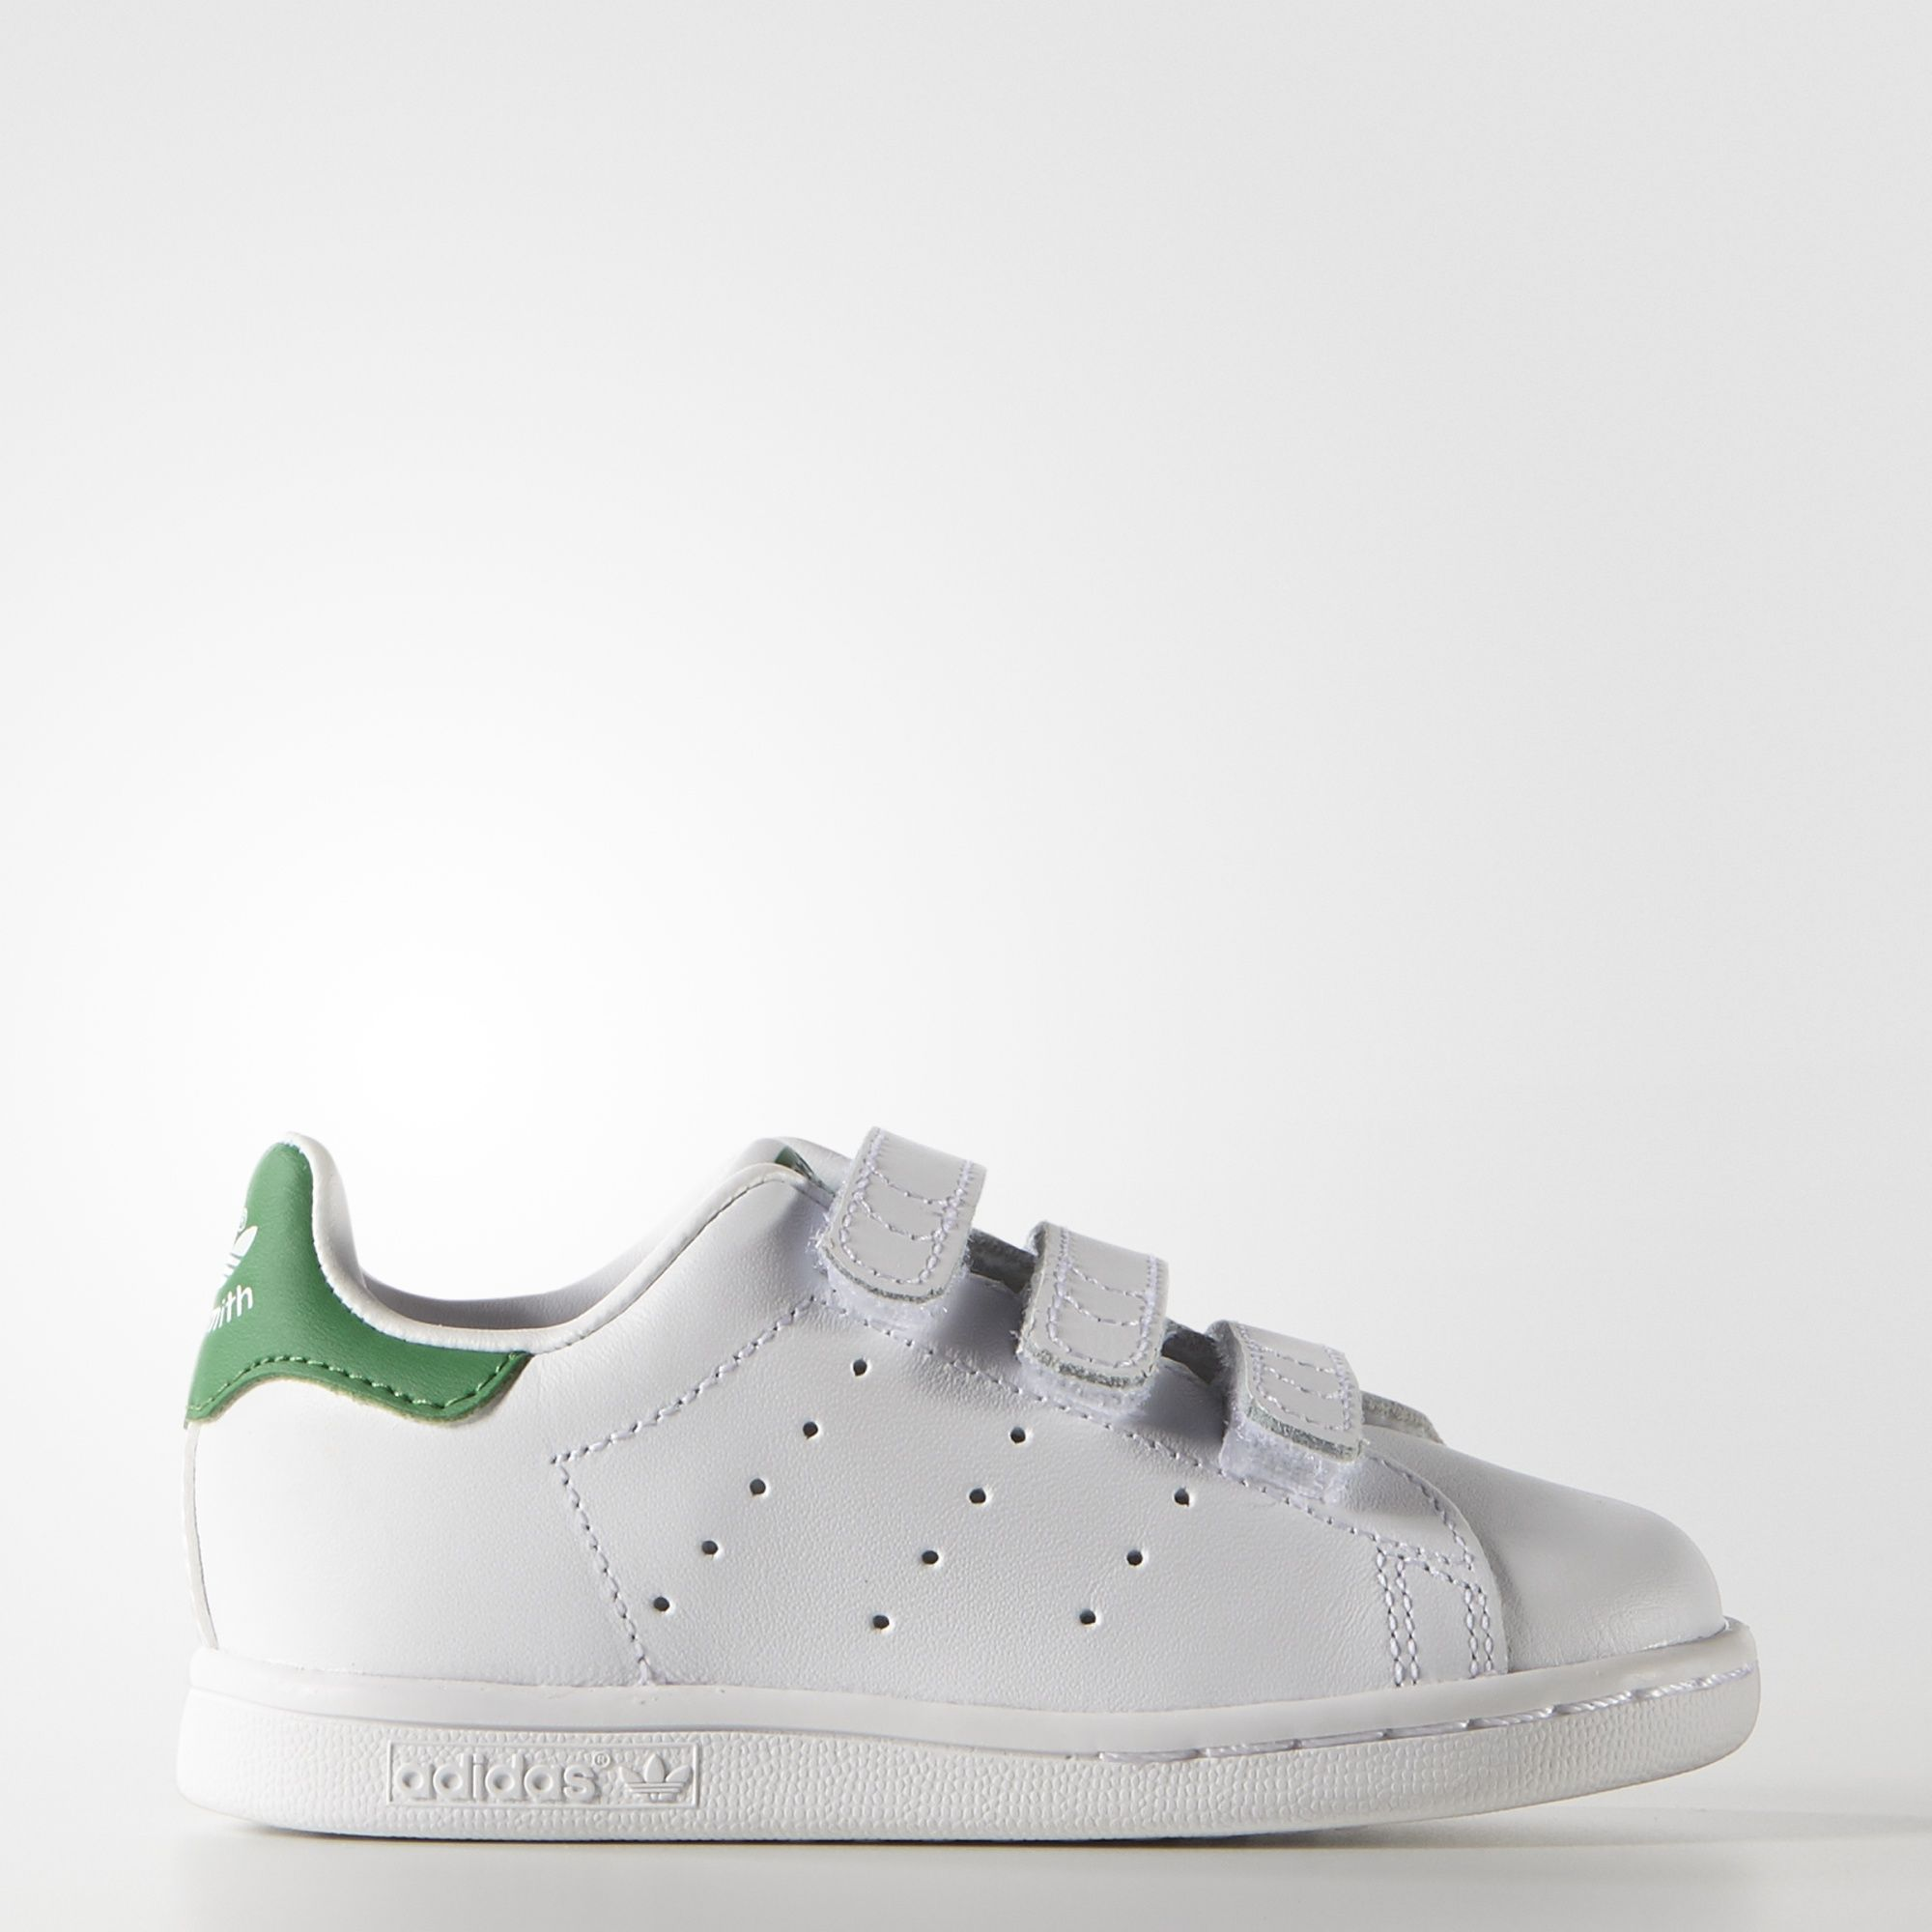 8d85cbf3299f8 Sneakers M20609 Zapatillas Adidas Original Stan Smith Bebe